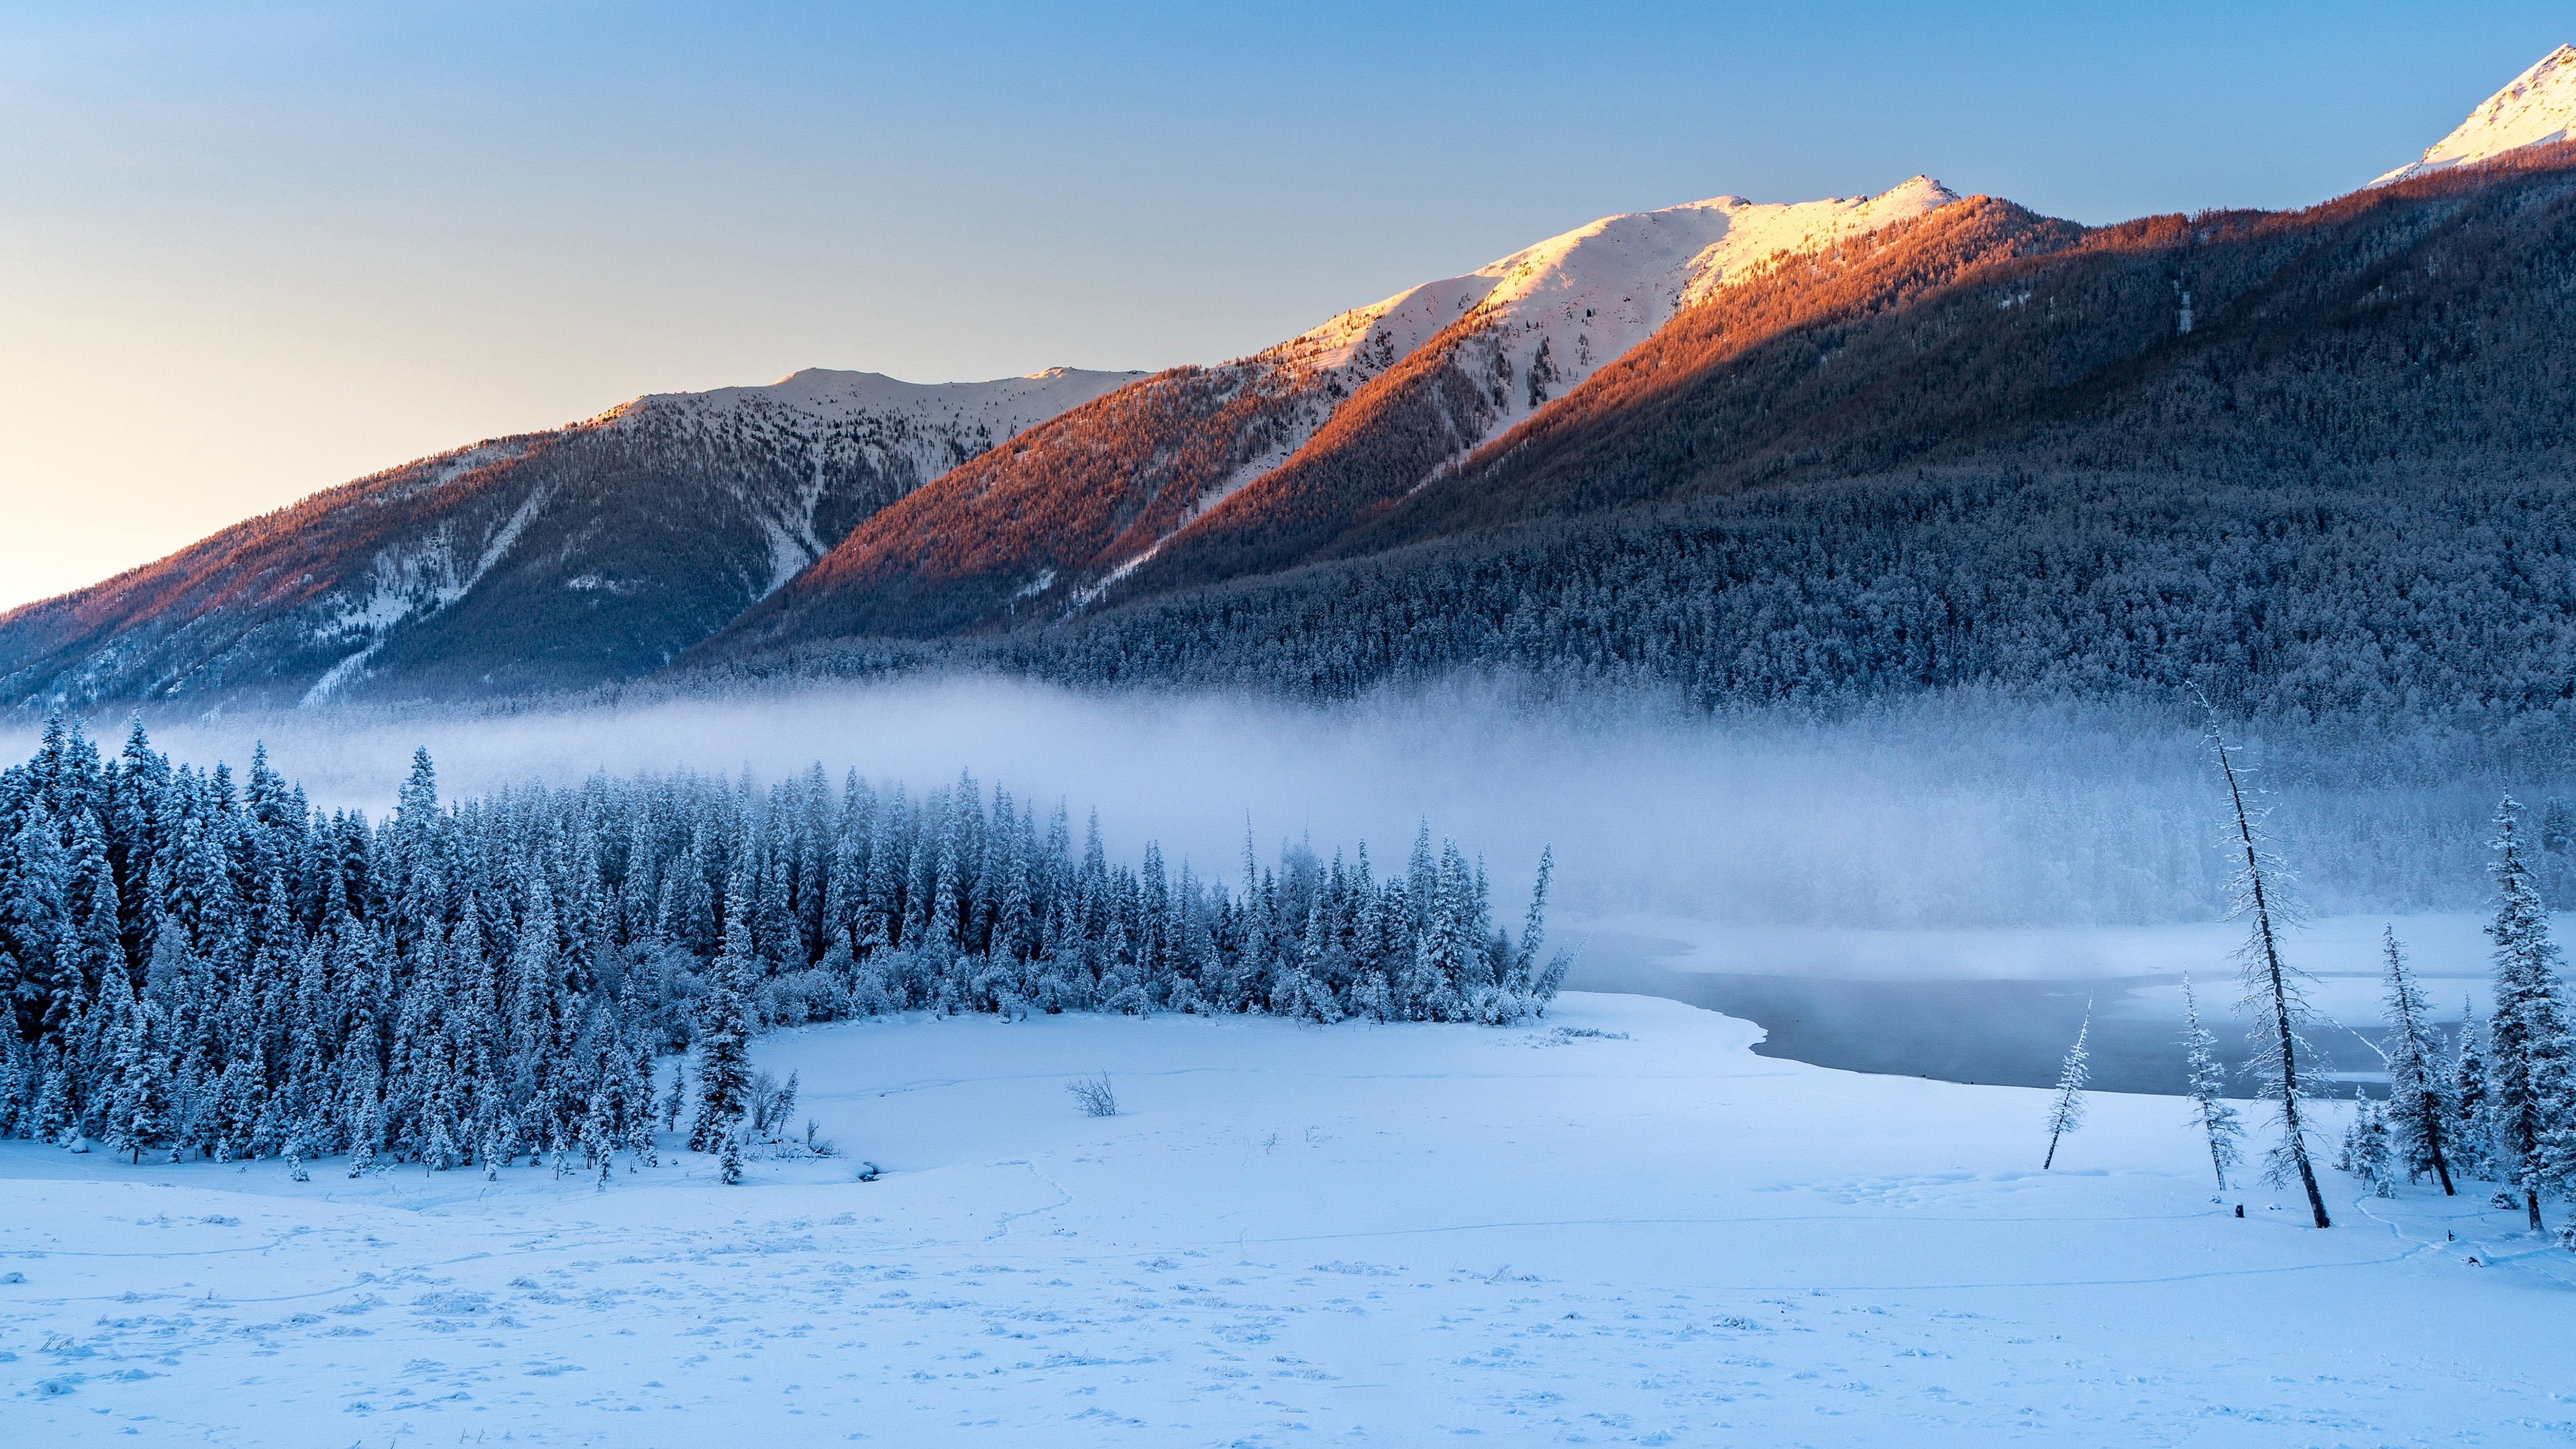 Forest Snowy Winter Mountains Wallpaper, HD Nature 4K ...